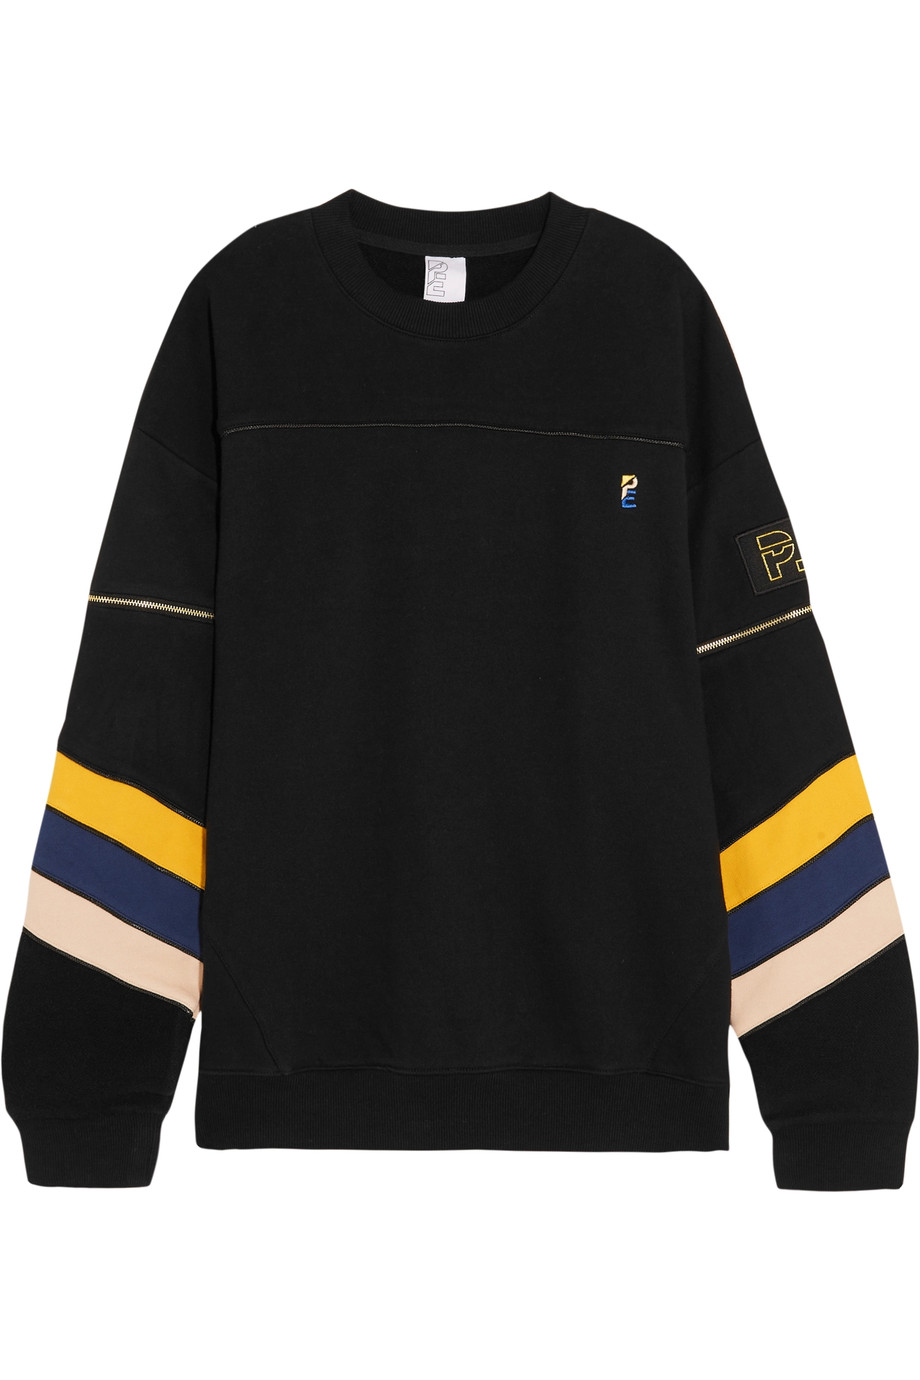 THE EVERY OCCASION SWEATSHIRT: THE UPGRADE